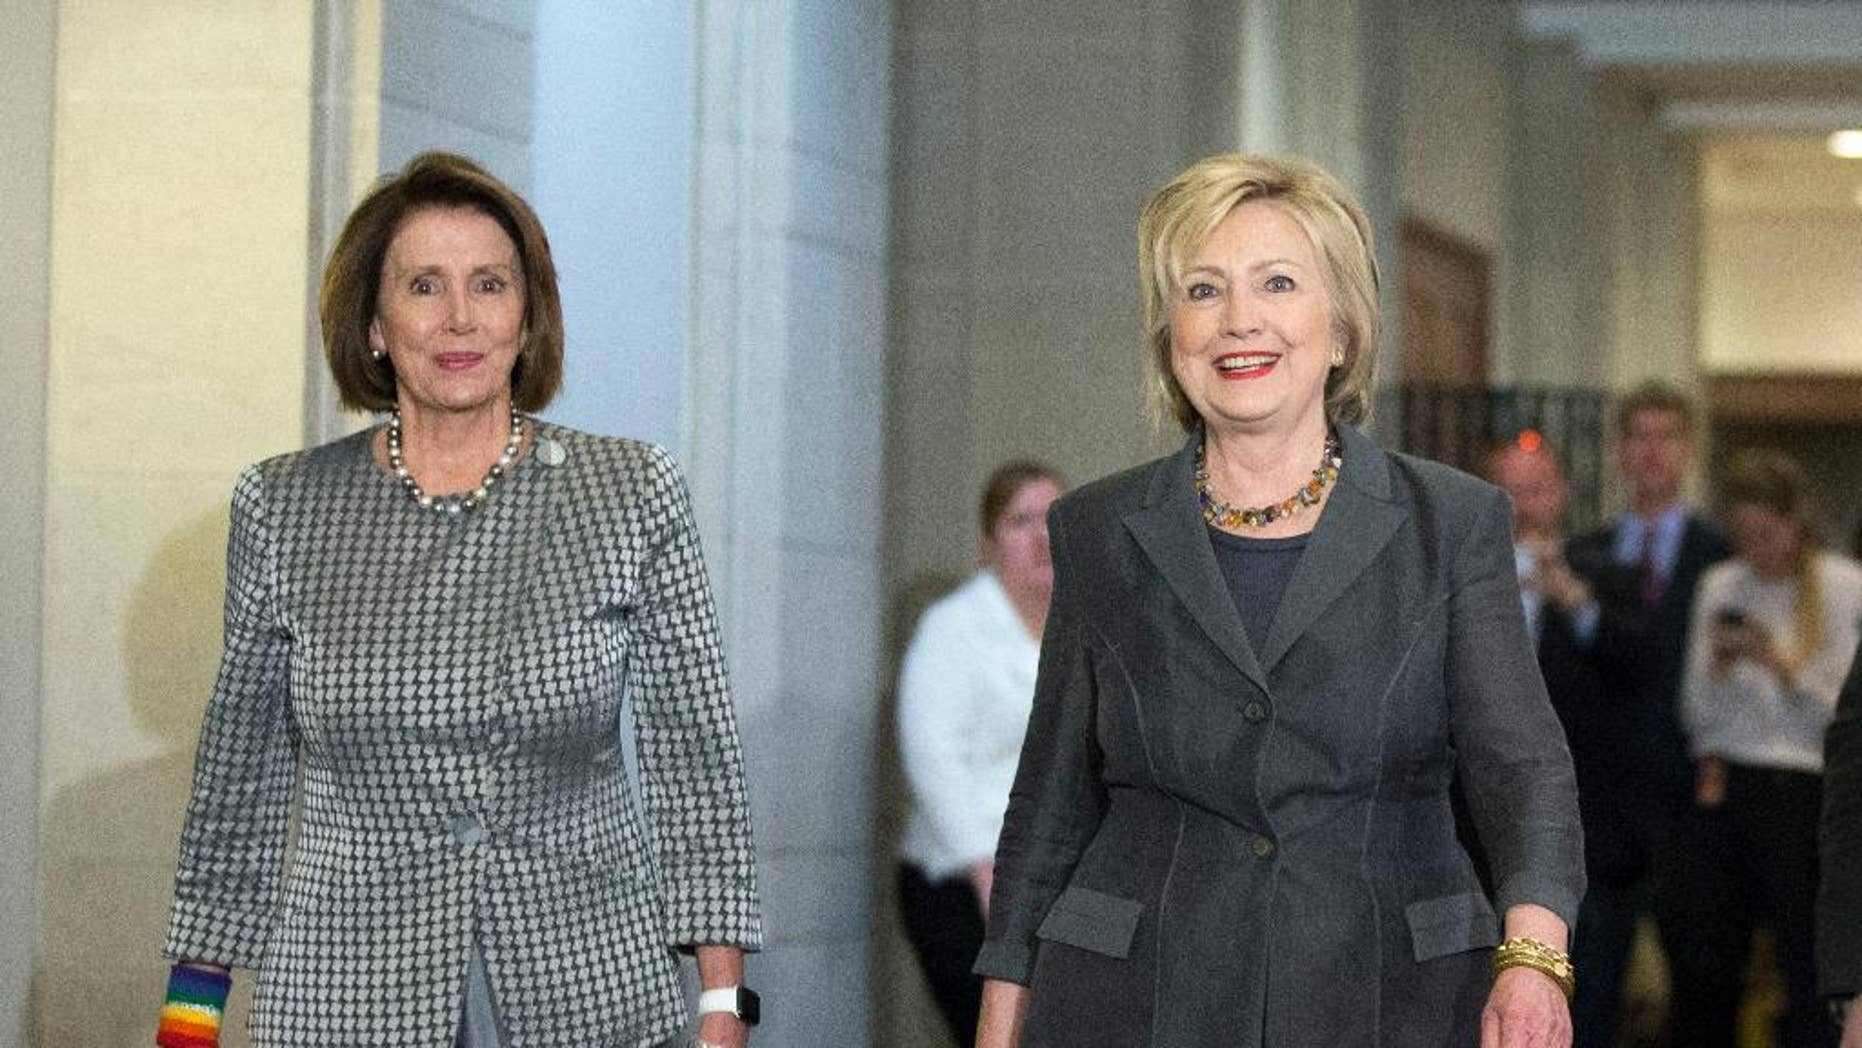 """Democratic presidential candidate Hillary Clinton and her minority leader, Nancy Pelosi, from California, meet at the House Democratic Caucus on Wednesday, June 22, 201<div class=""""e3lan e3lan-in-post1""""><script async src=""""//pagead2.googlesyndication.com/pagead/js/adsbygoogle.js""""></script> <!-- Text_Display_Responsive --> <ins class=""""adsbygoogle""""      style=""""display:block""""      data-ad-client=""""ca-pub-6192903739091894""""      data-ad-slot=""""3136787391""""      data-ad-format=""""auto""""      data-full-width-responsive=""""true""""></ins> <script> (adsbygoogle = window.adsbygoogle 